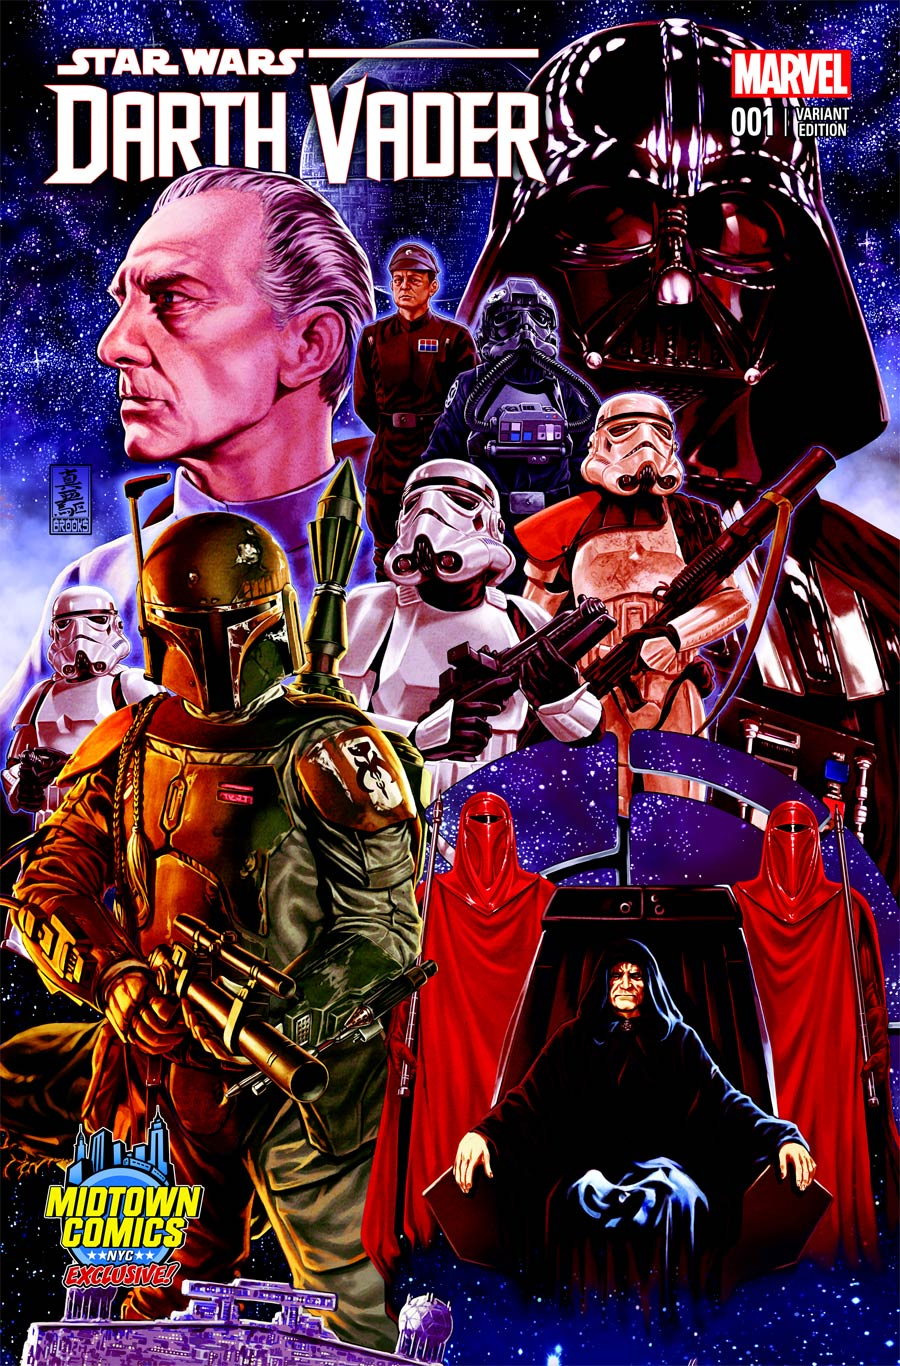 Darth Vader #1 (Mark Brooks Midtown Comics Connecting Variant Cover 2) (11.02.2015)